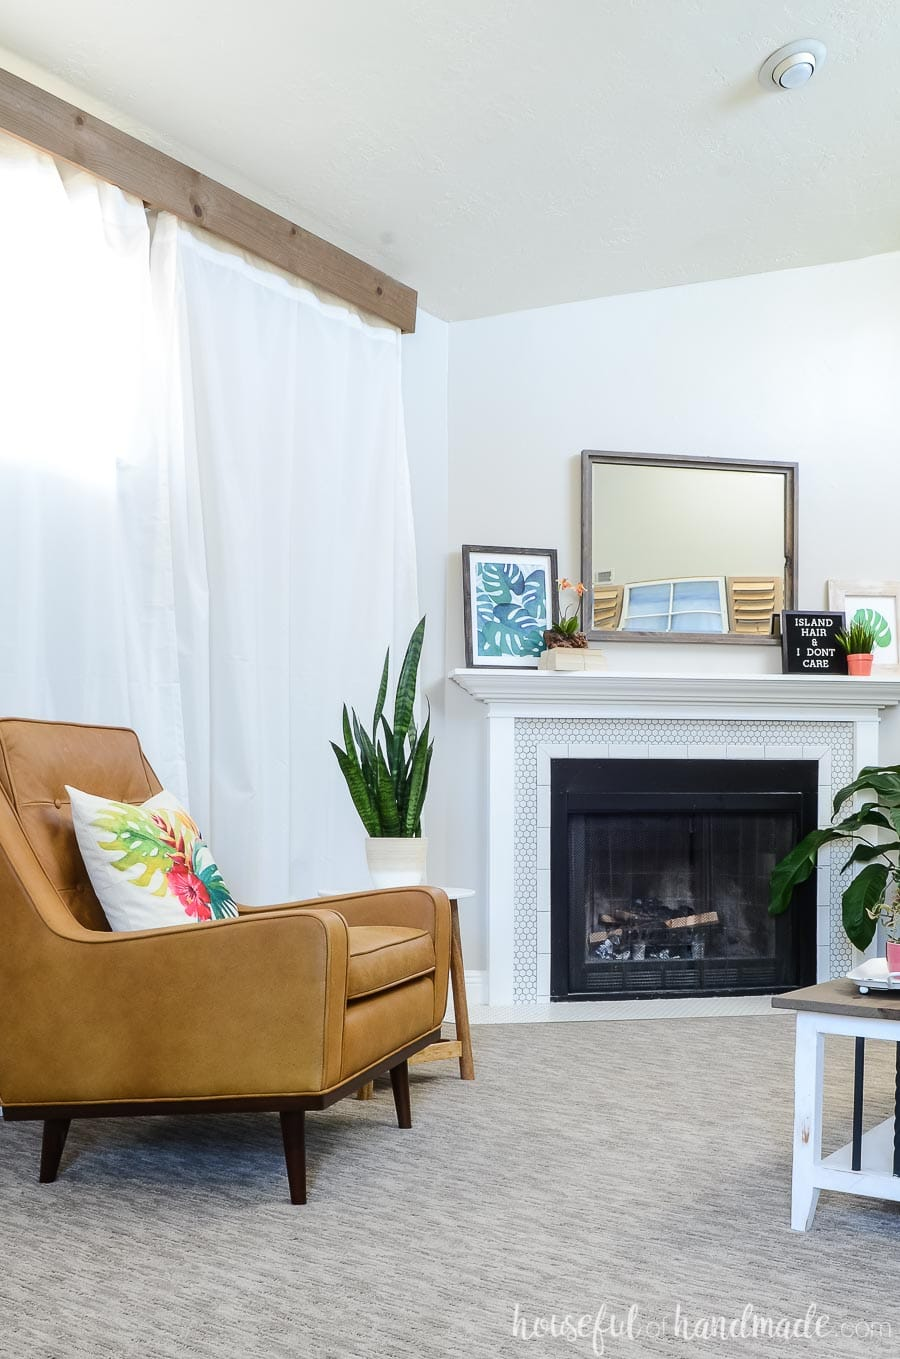 See how easy it was to create a tropical living room on a budget with these easy summer decor ideas from Housefulofhandmade.com.